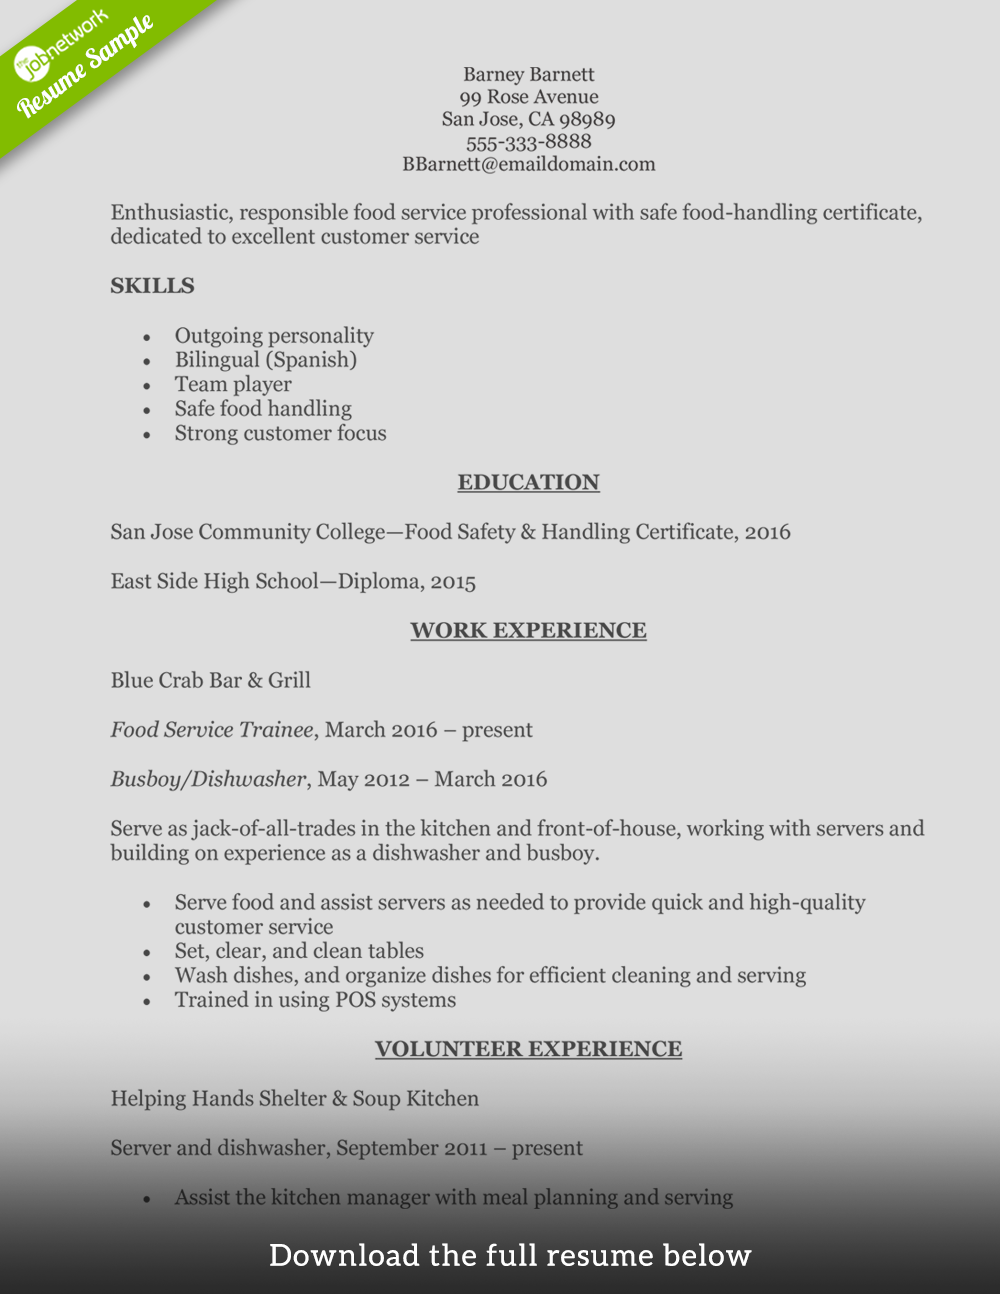 Show Me An Example Of A Resume | How To Write A Perfect Food Service Resume Examples Included